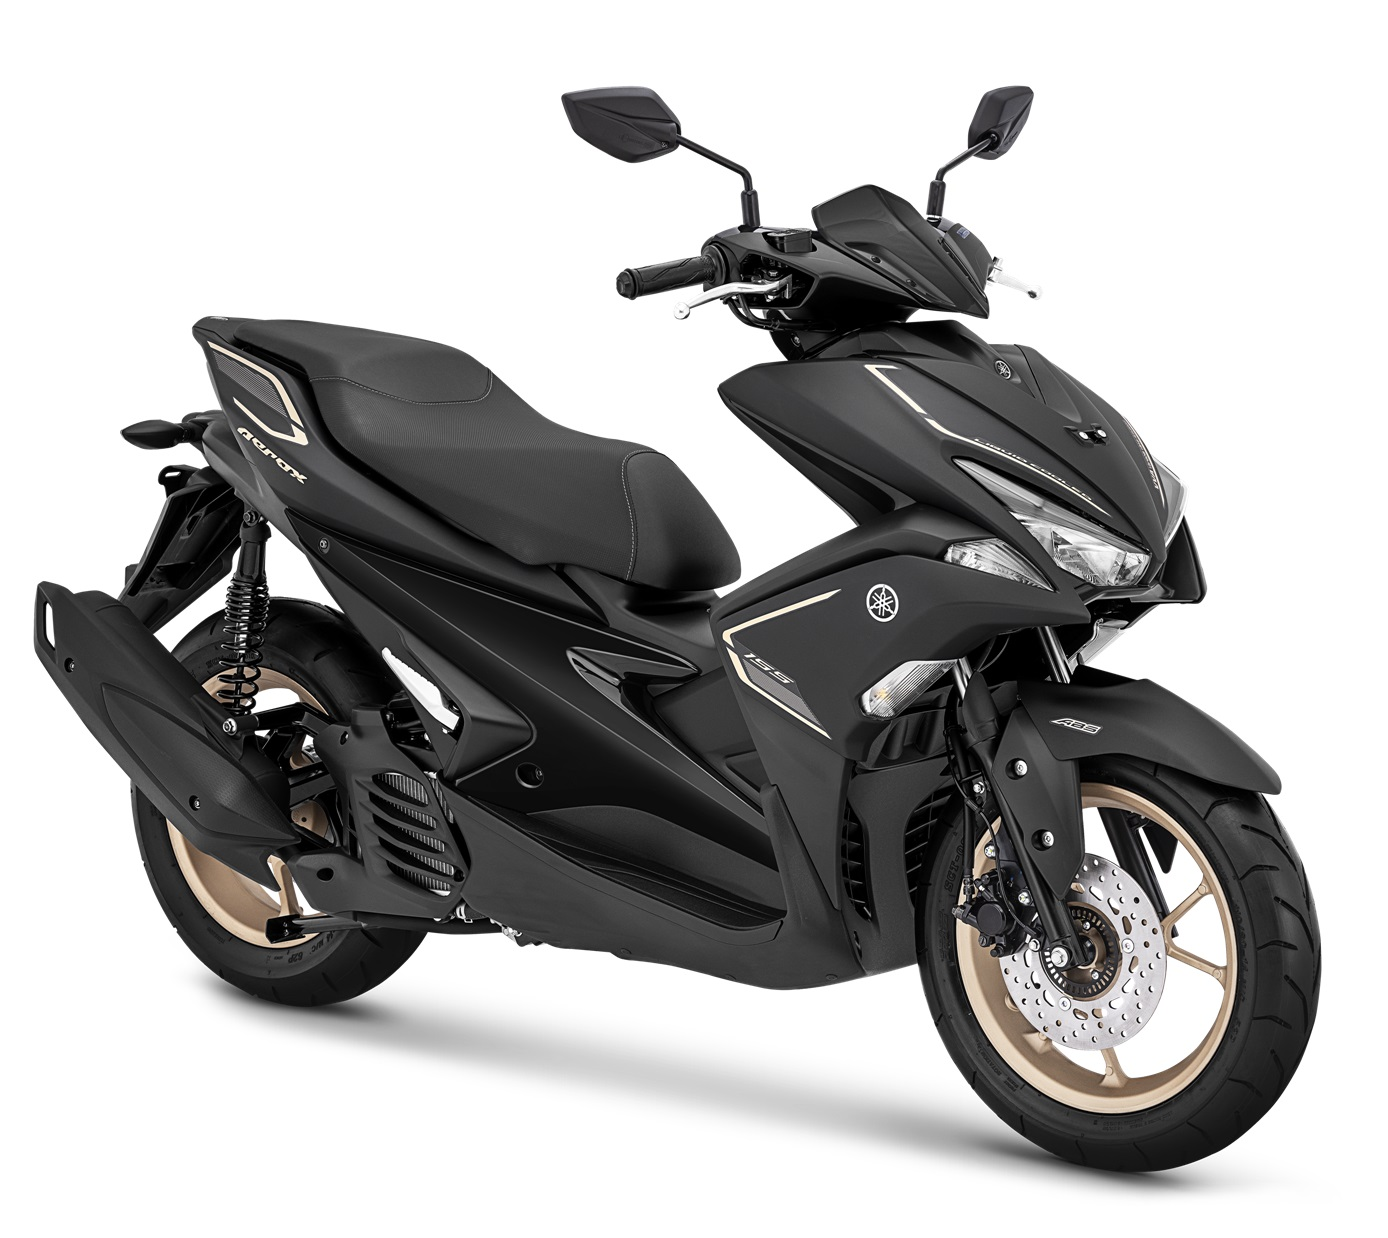 2019 Yamaha Aerox 155 VVA S-Version Matte Black